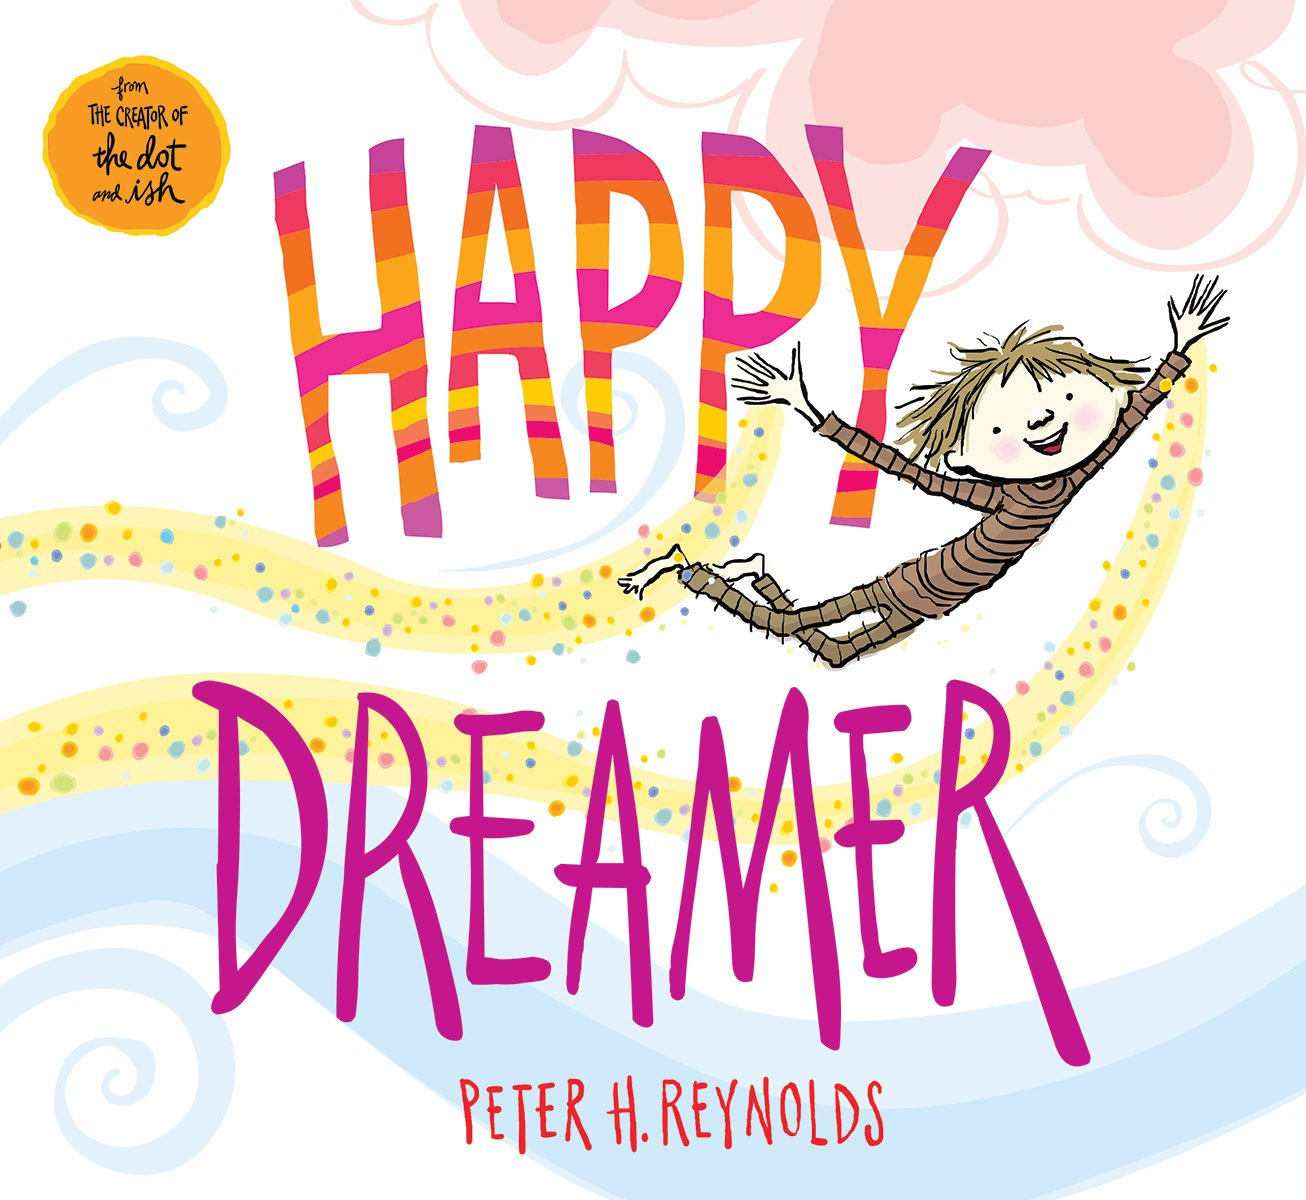 Happy Dreamer Peter Reynolds